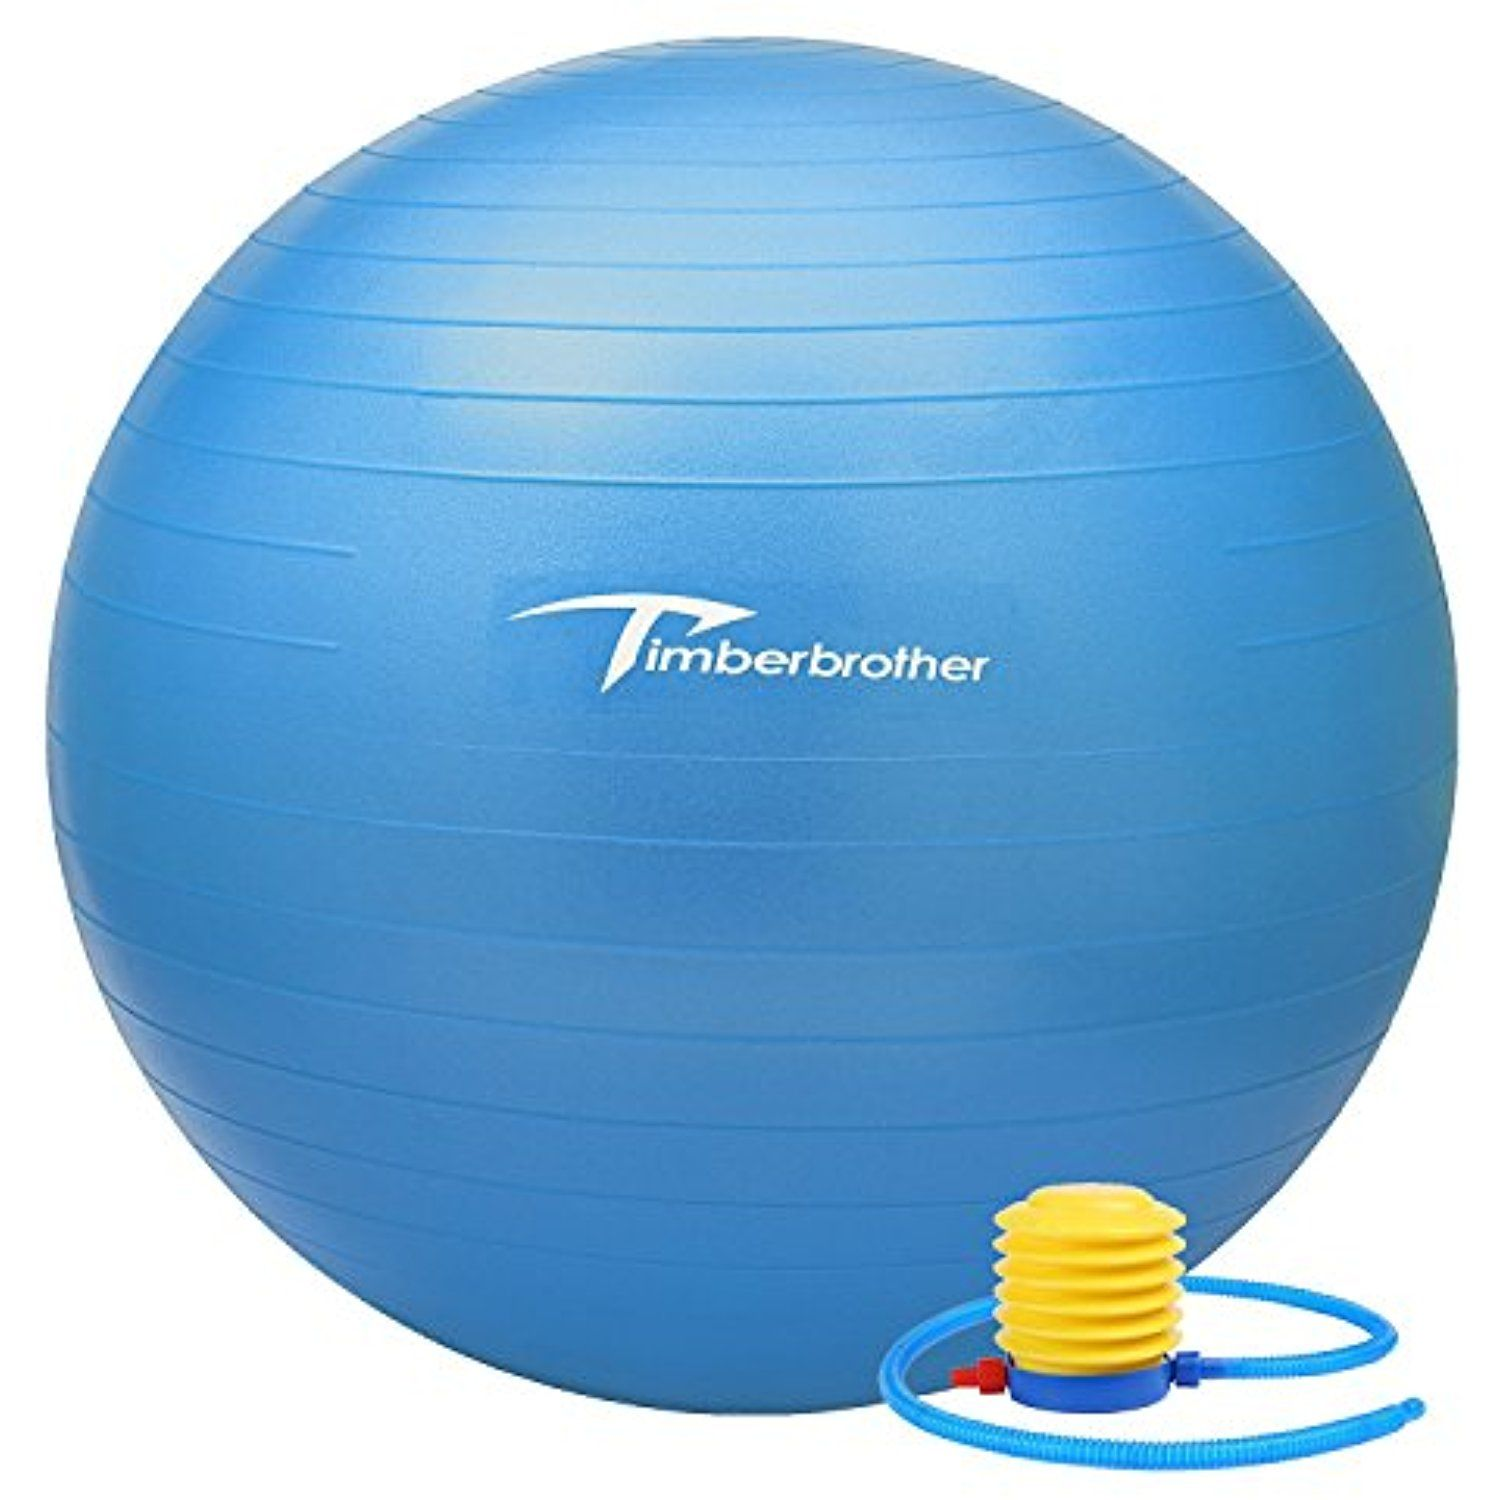 Timberbrother AntiBurst Exercise Stability Ball / Fitness